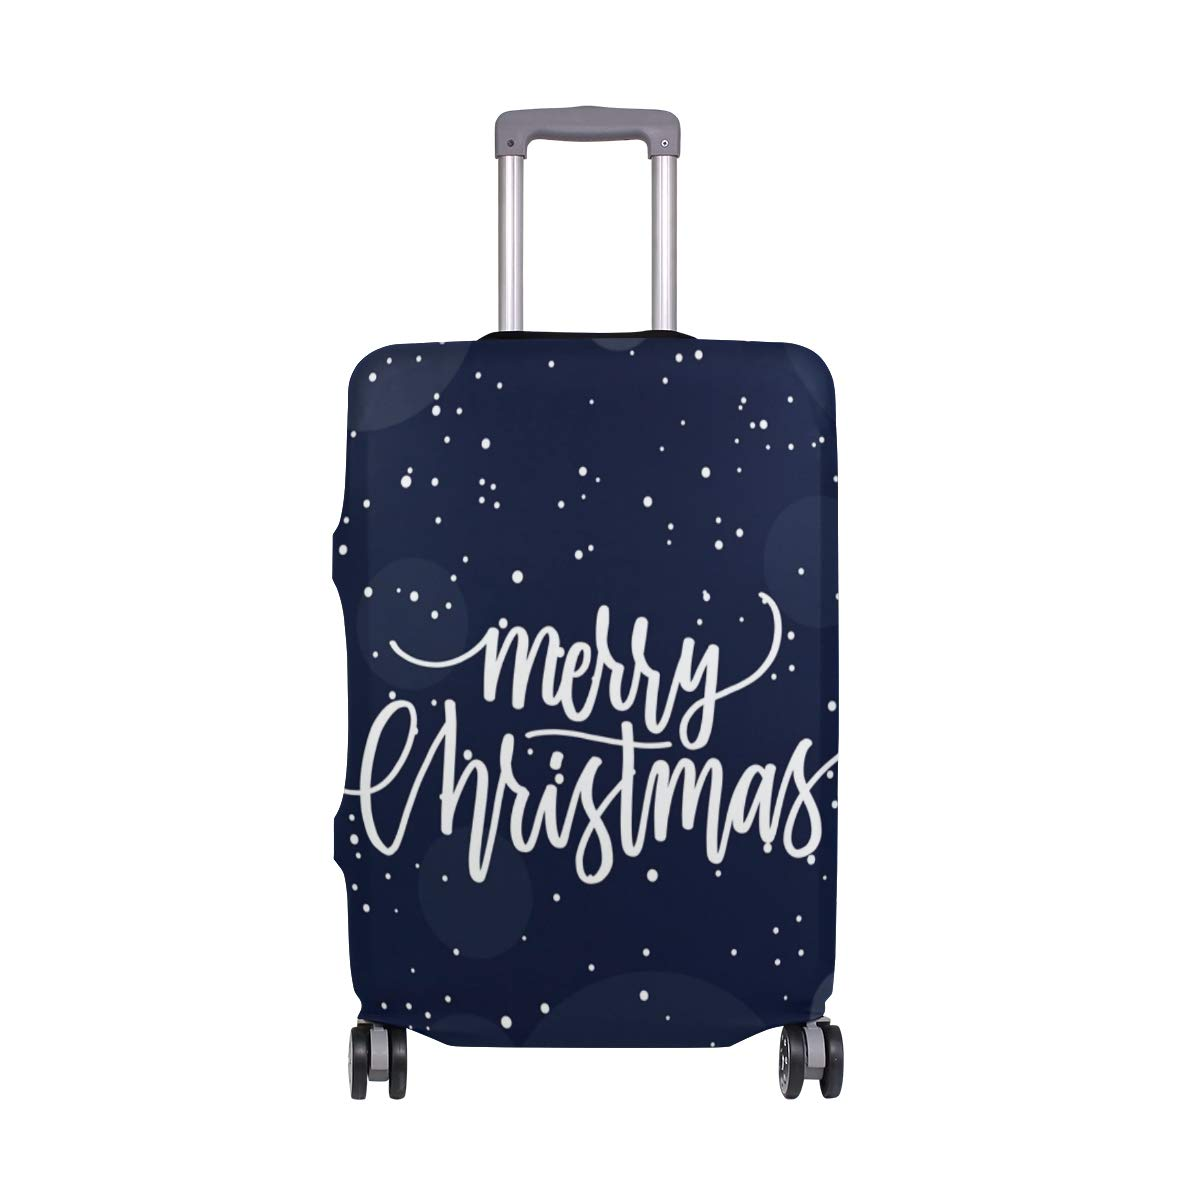 Nanmma Cute 3D Merry Christmas Pattern Luggage Protector Travel Luggage Cover Trolley Case Protective Cover Fits 18-32 Inch